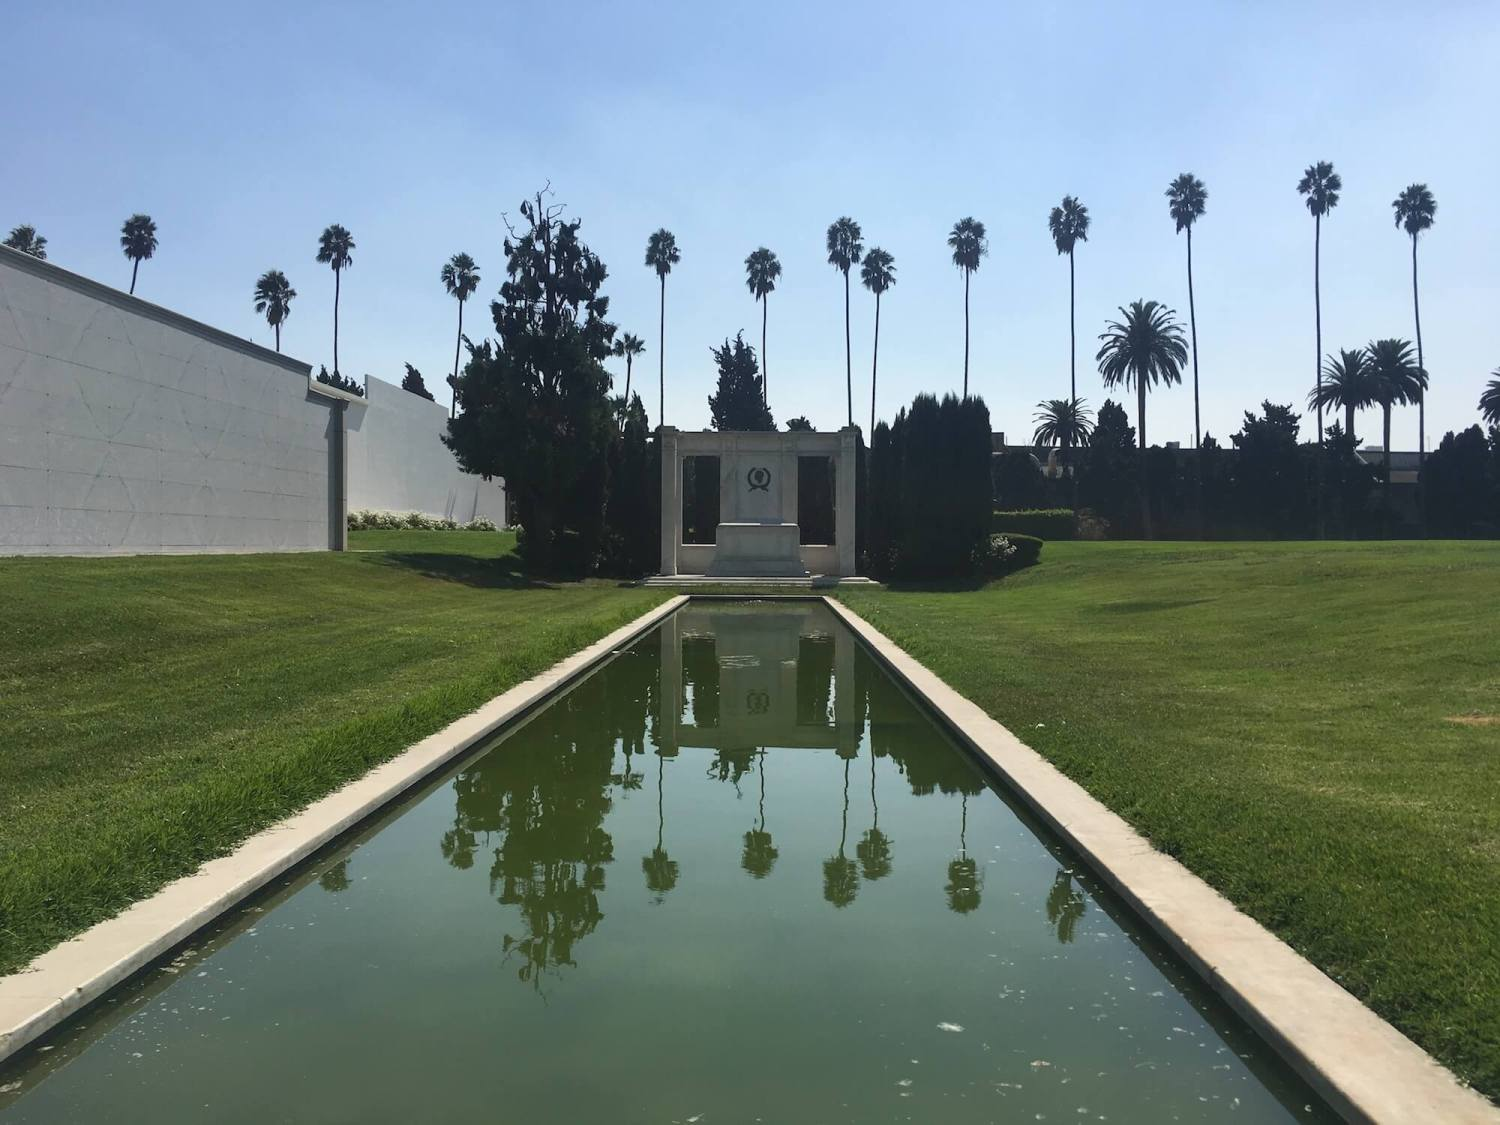 Douglas Fairbanks memorial, hollywood forever cemetery, Douglas Fairbanks junior memorial, Douglass Fairbanks memorial garden hollywood forever cemetery